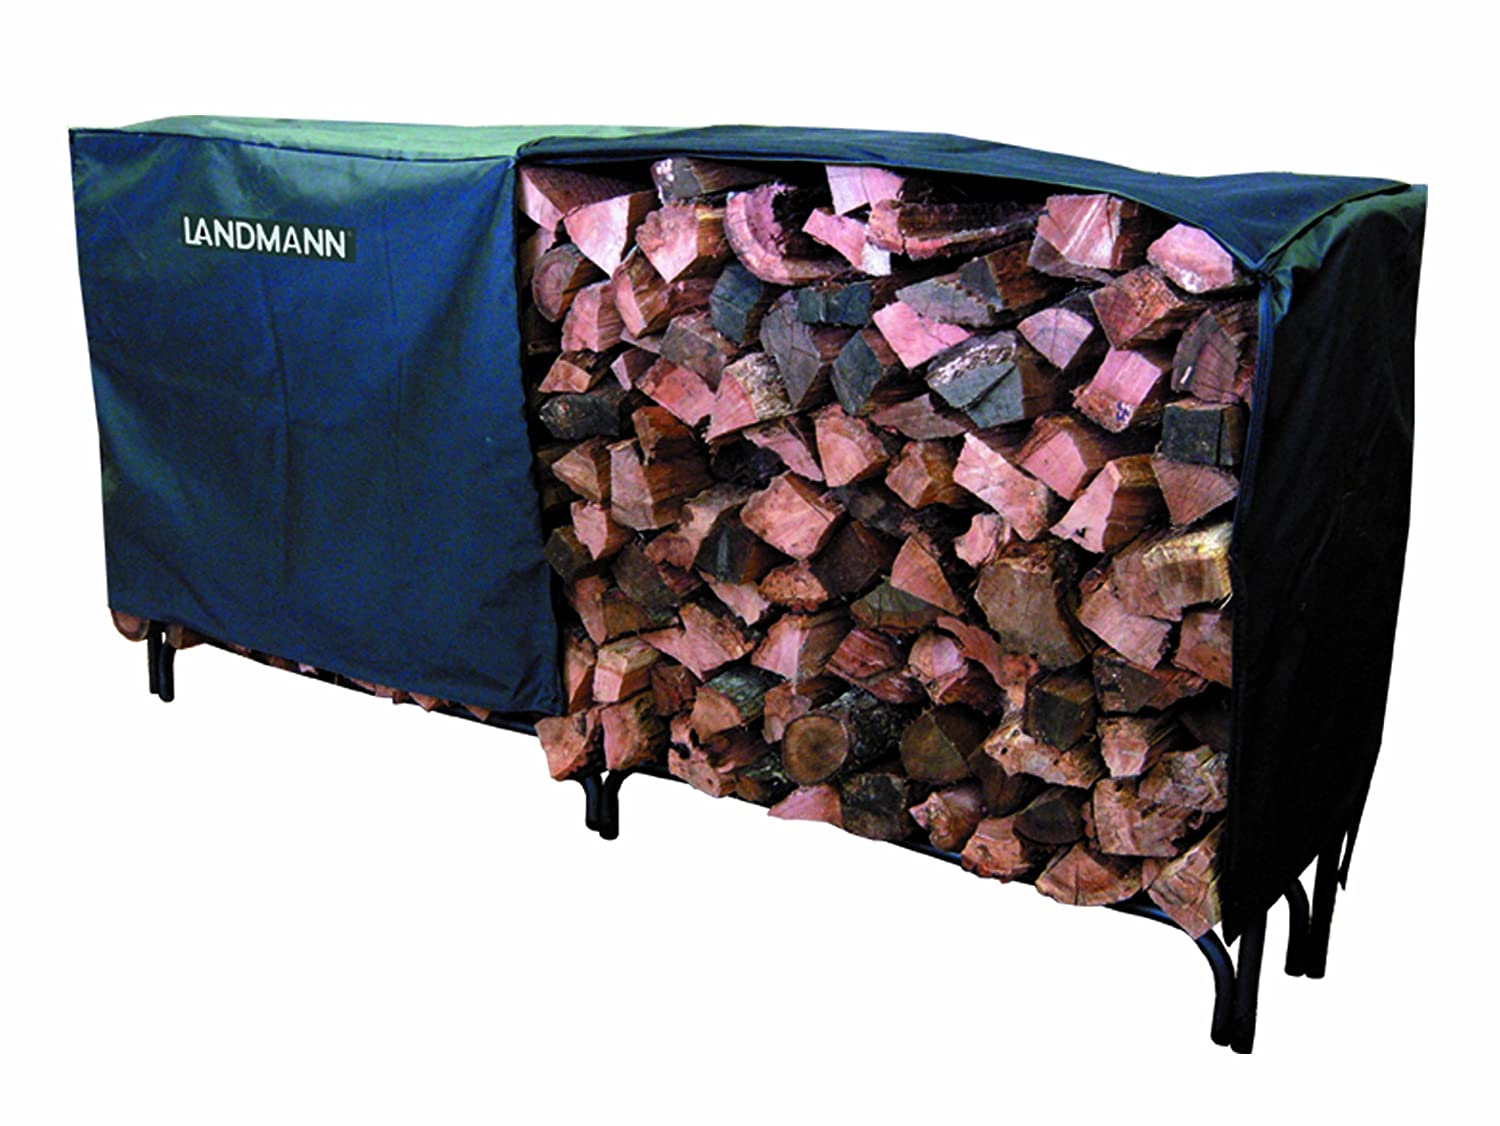 Landmann 82413 4-Foot Firewood Log Rack (Cover not included) Landmann USA